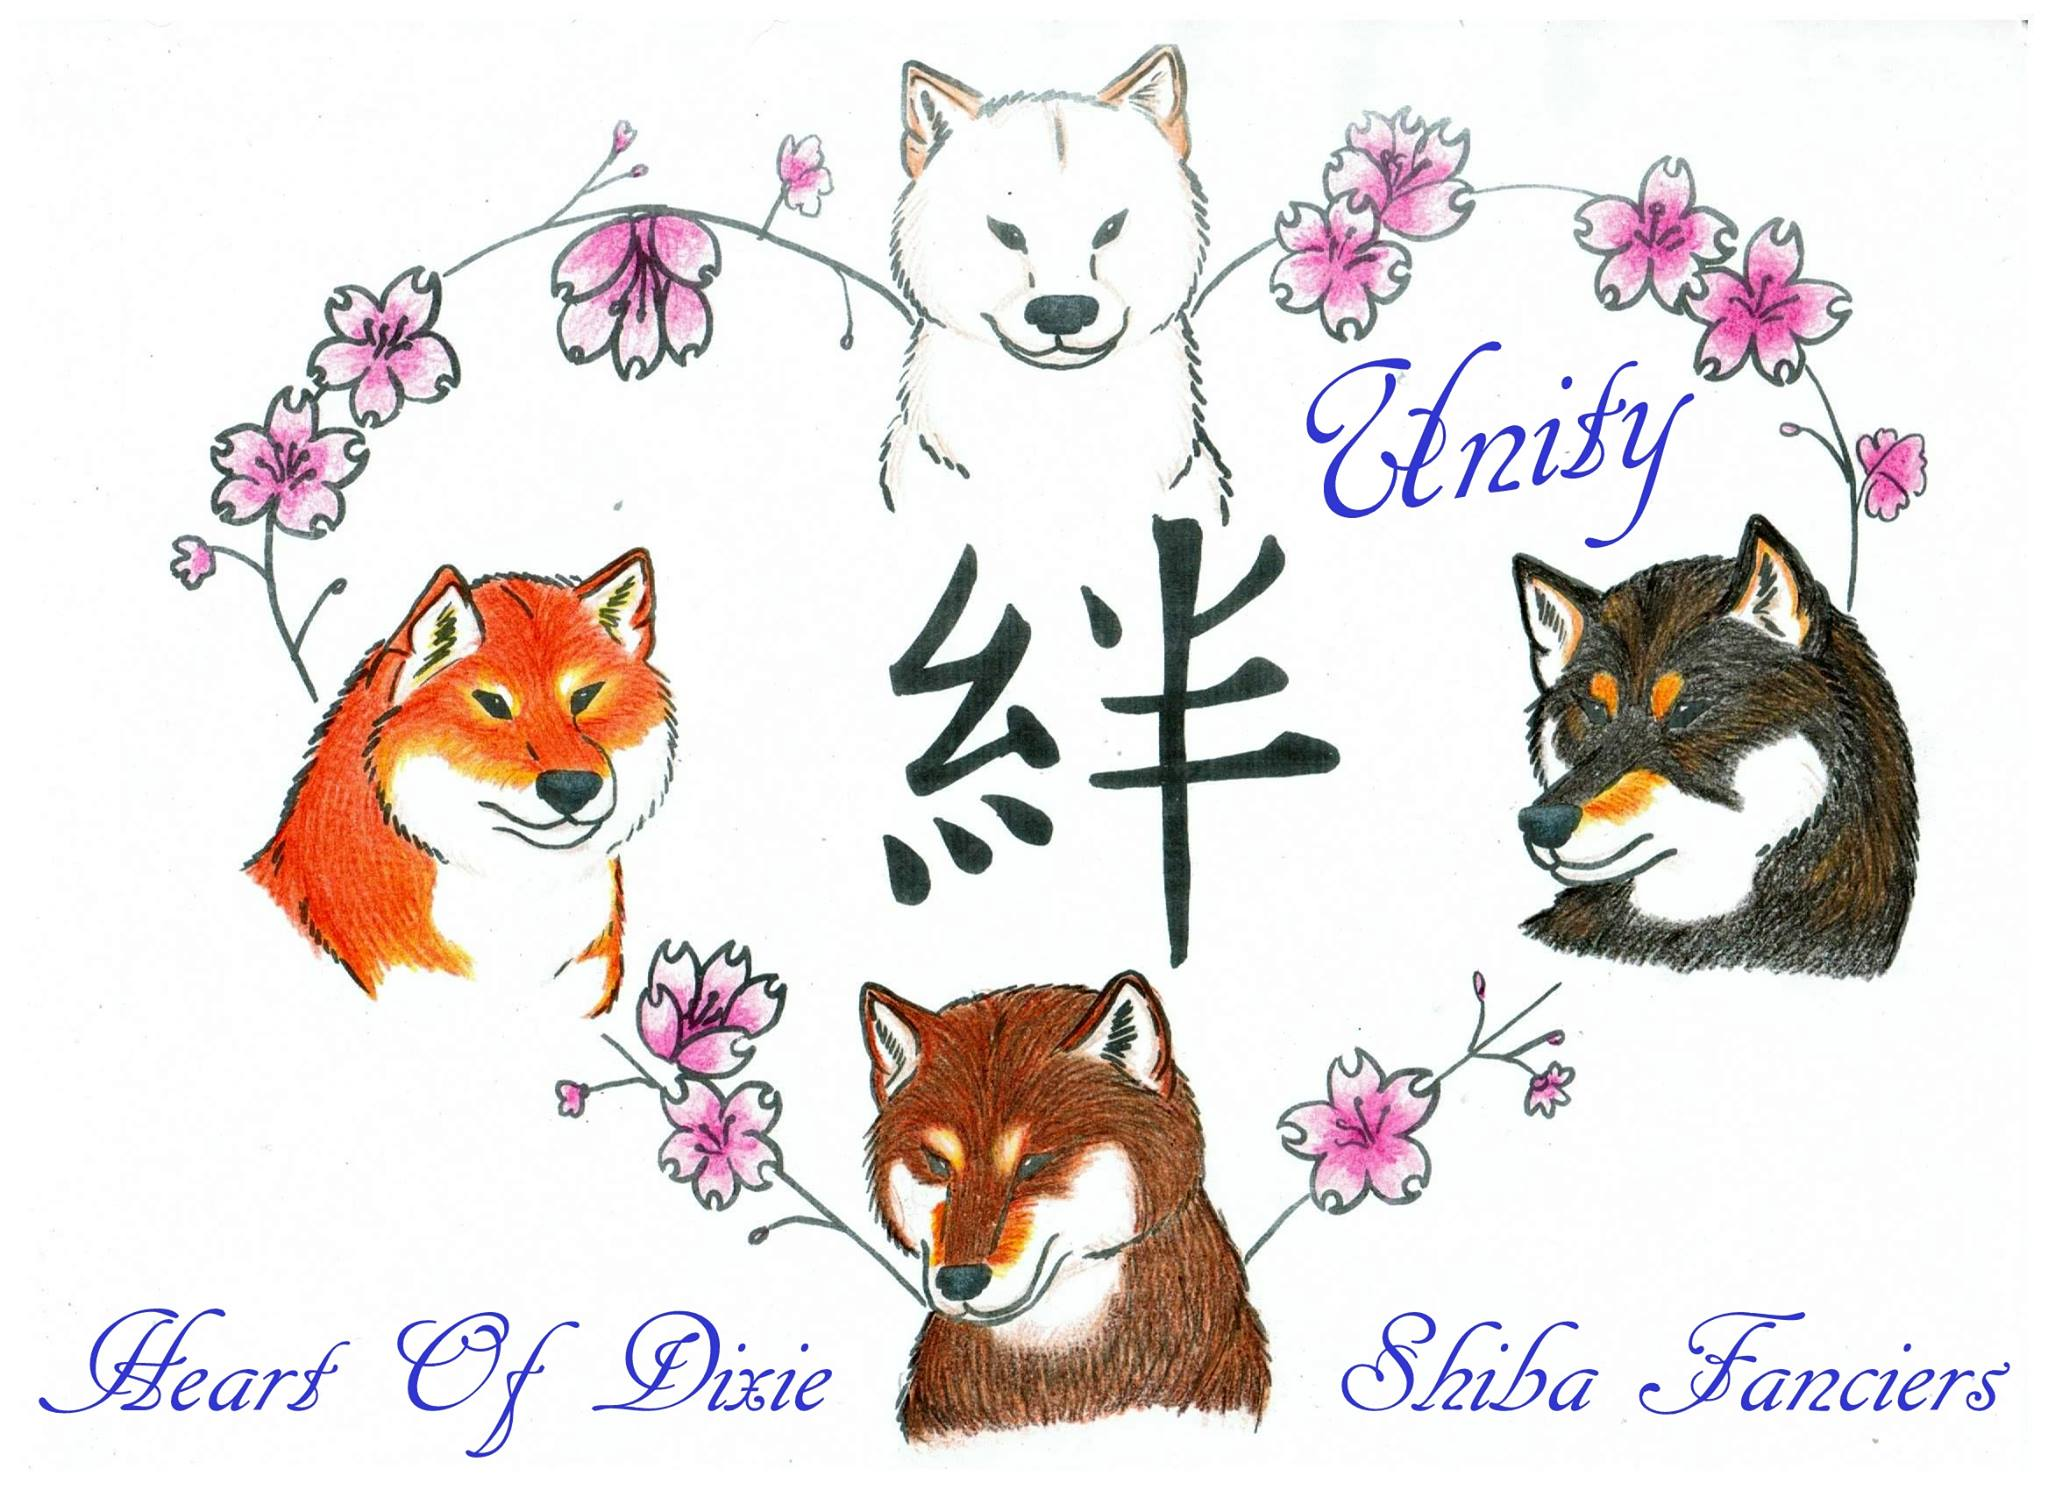 Heart of Dixie Shiba Fanciers